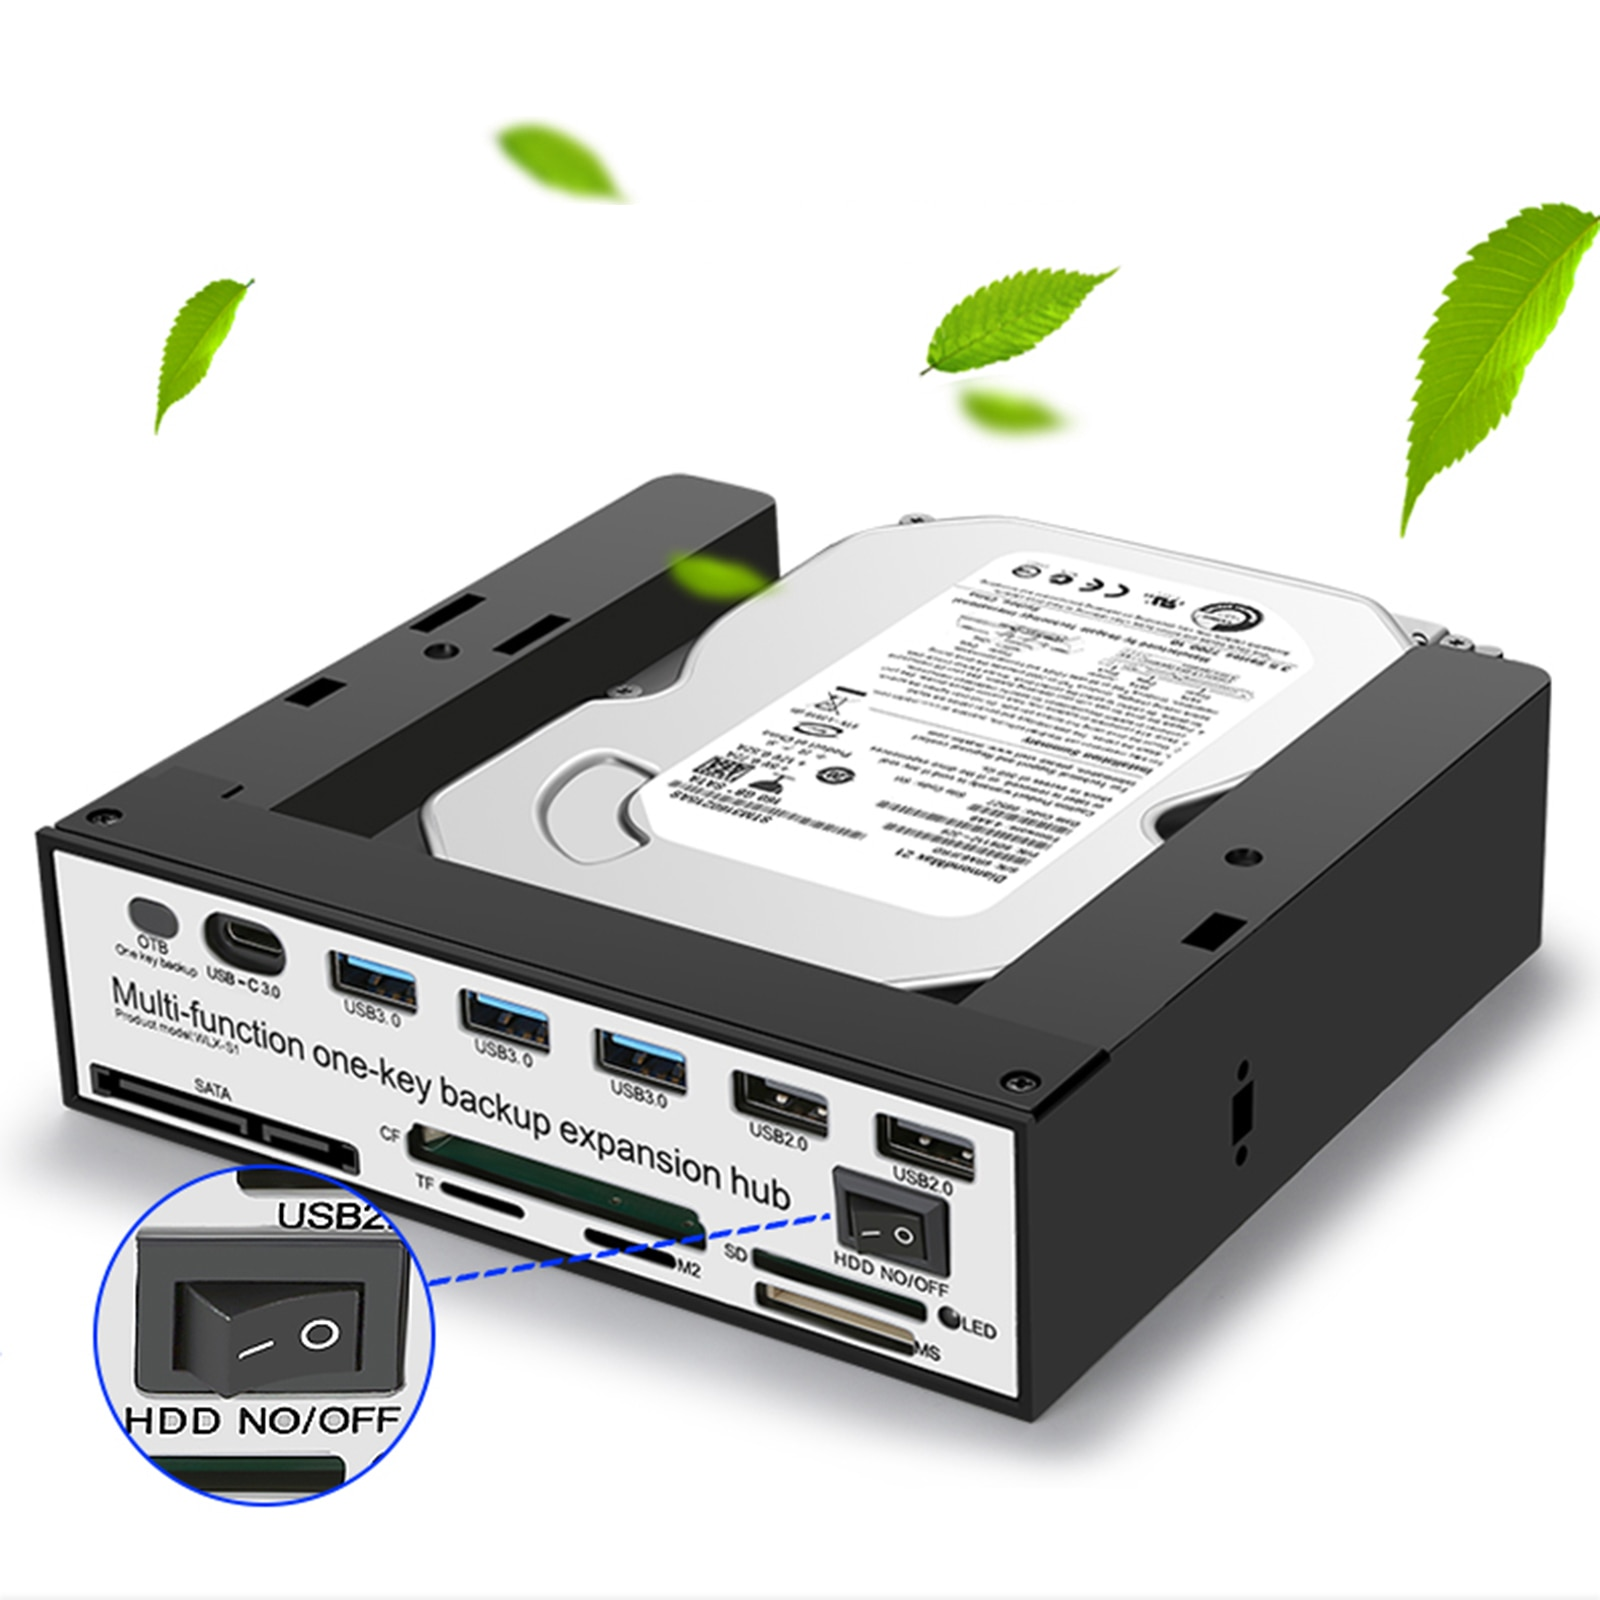 Hard Drive Disk Enclosure for 2.5 or 3.5 inch HDD Data Backup for Desktop PC Type-C USB 3.0 / 2.0 15pin SATA 1.5Gbps Card Reader